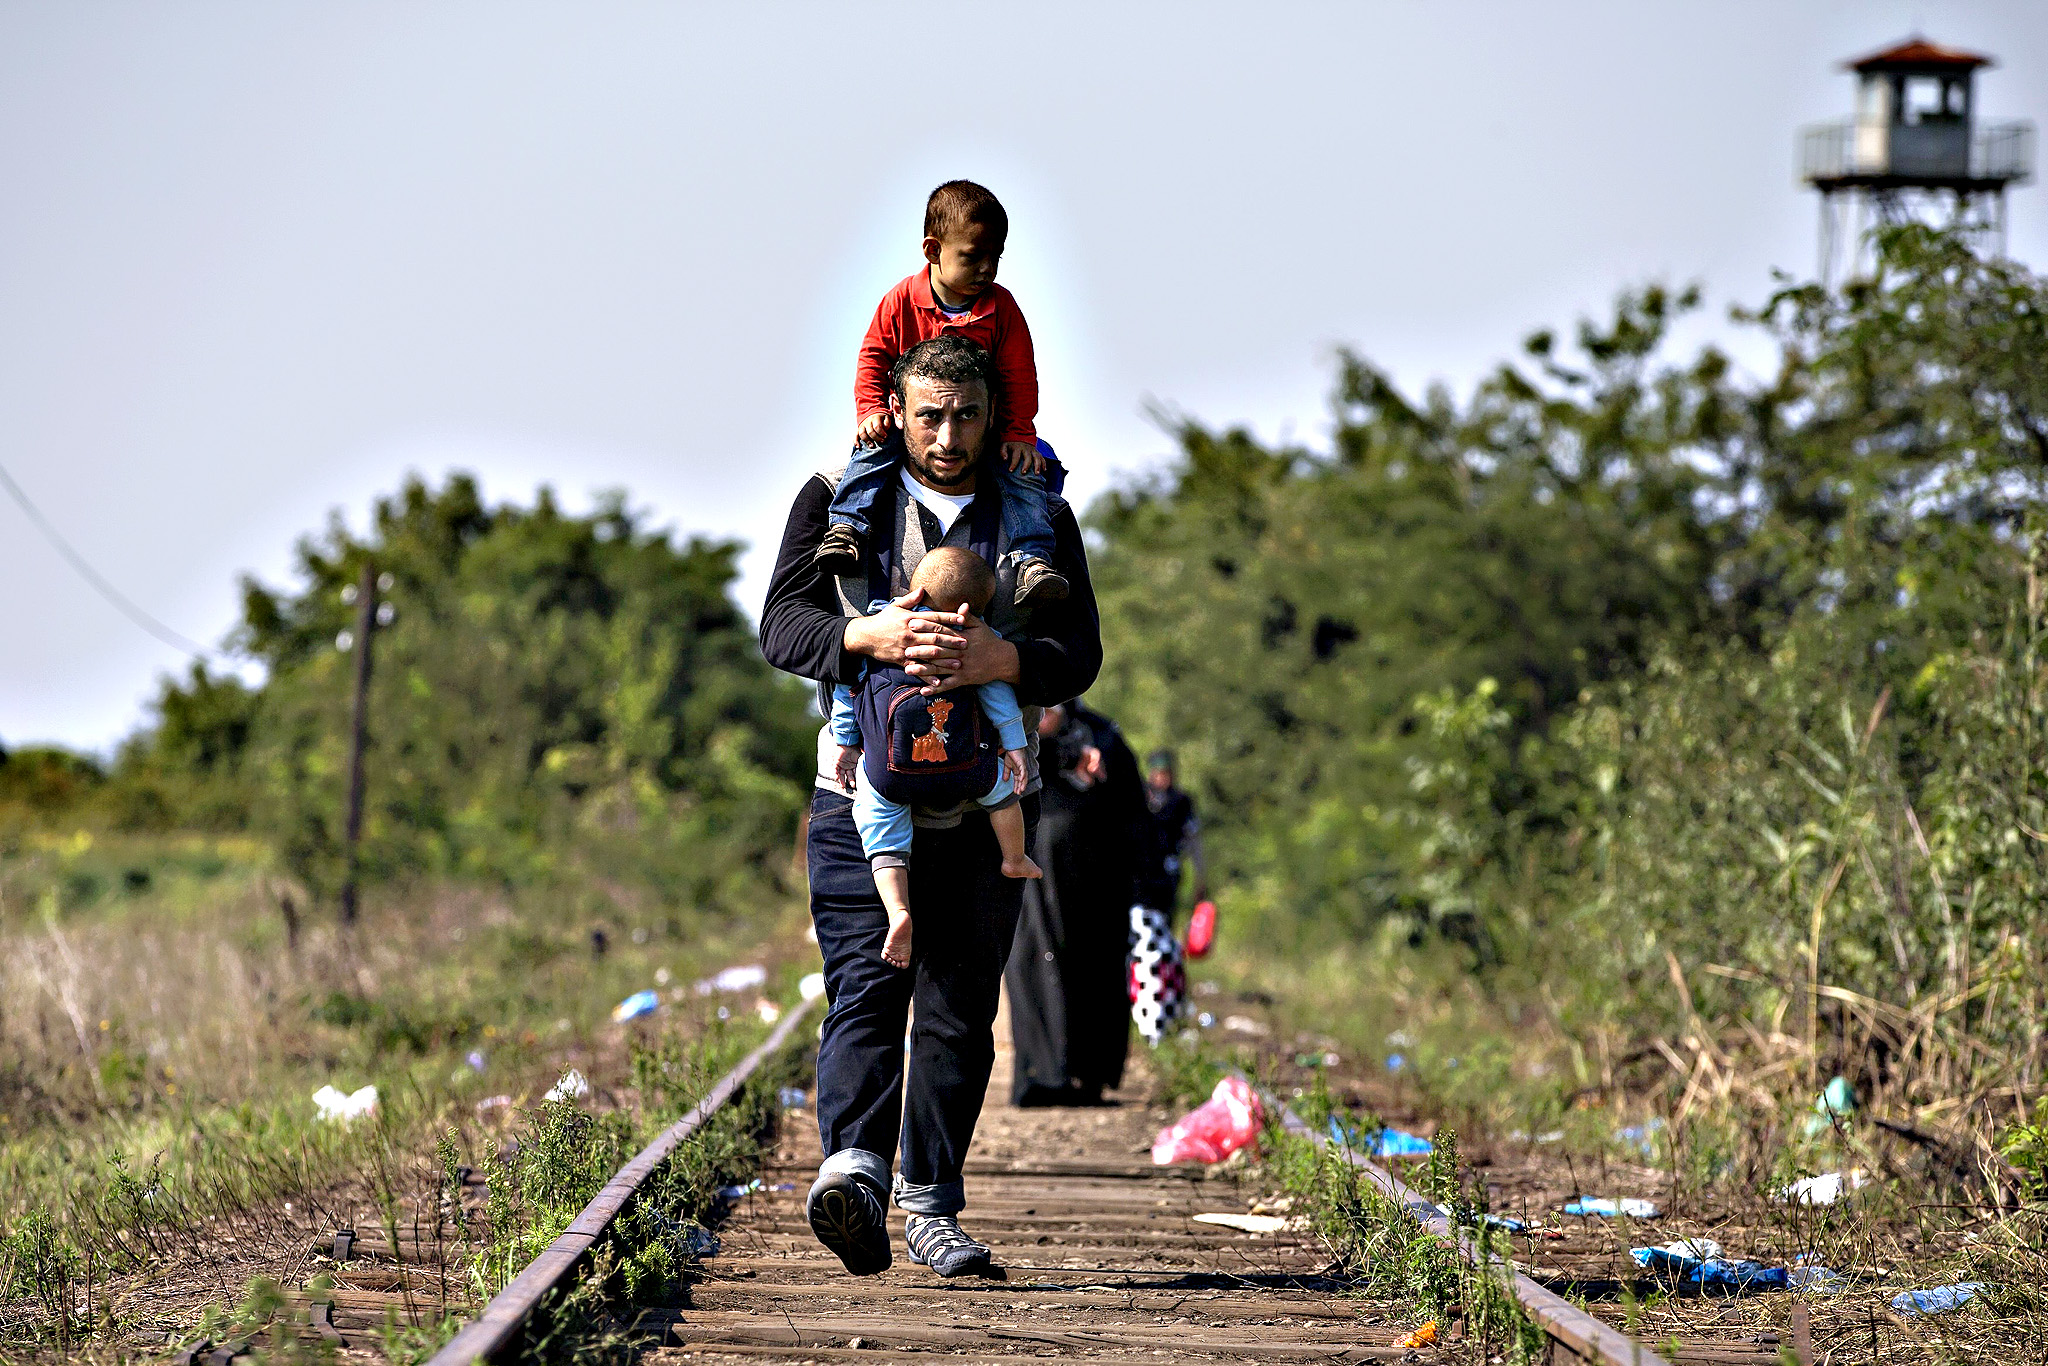 A Syrian migrant carries children as he walks along railway track to cross Serbian border with Hungary near the village of Horgos...A Syrian migrant carries his children as he walks along a railway track to cross the Serbian border with Hungary near the village of Horgos August 27, 2015. Hungary made plans on Wednesday to reinforce its southern border with helicopters, mounted police and dogs, and was also considering using the army as record numbers of migrants, many of them Syrian refugees, passed through coils of razor-wire into Europe